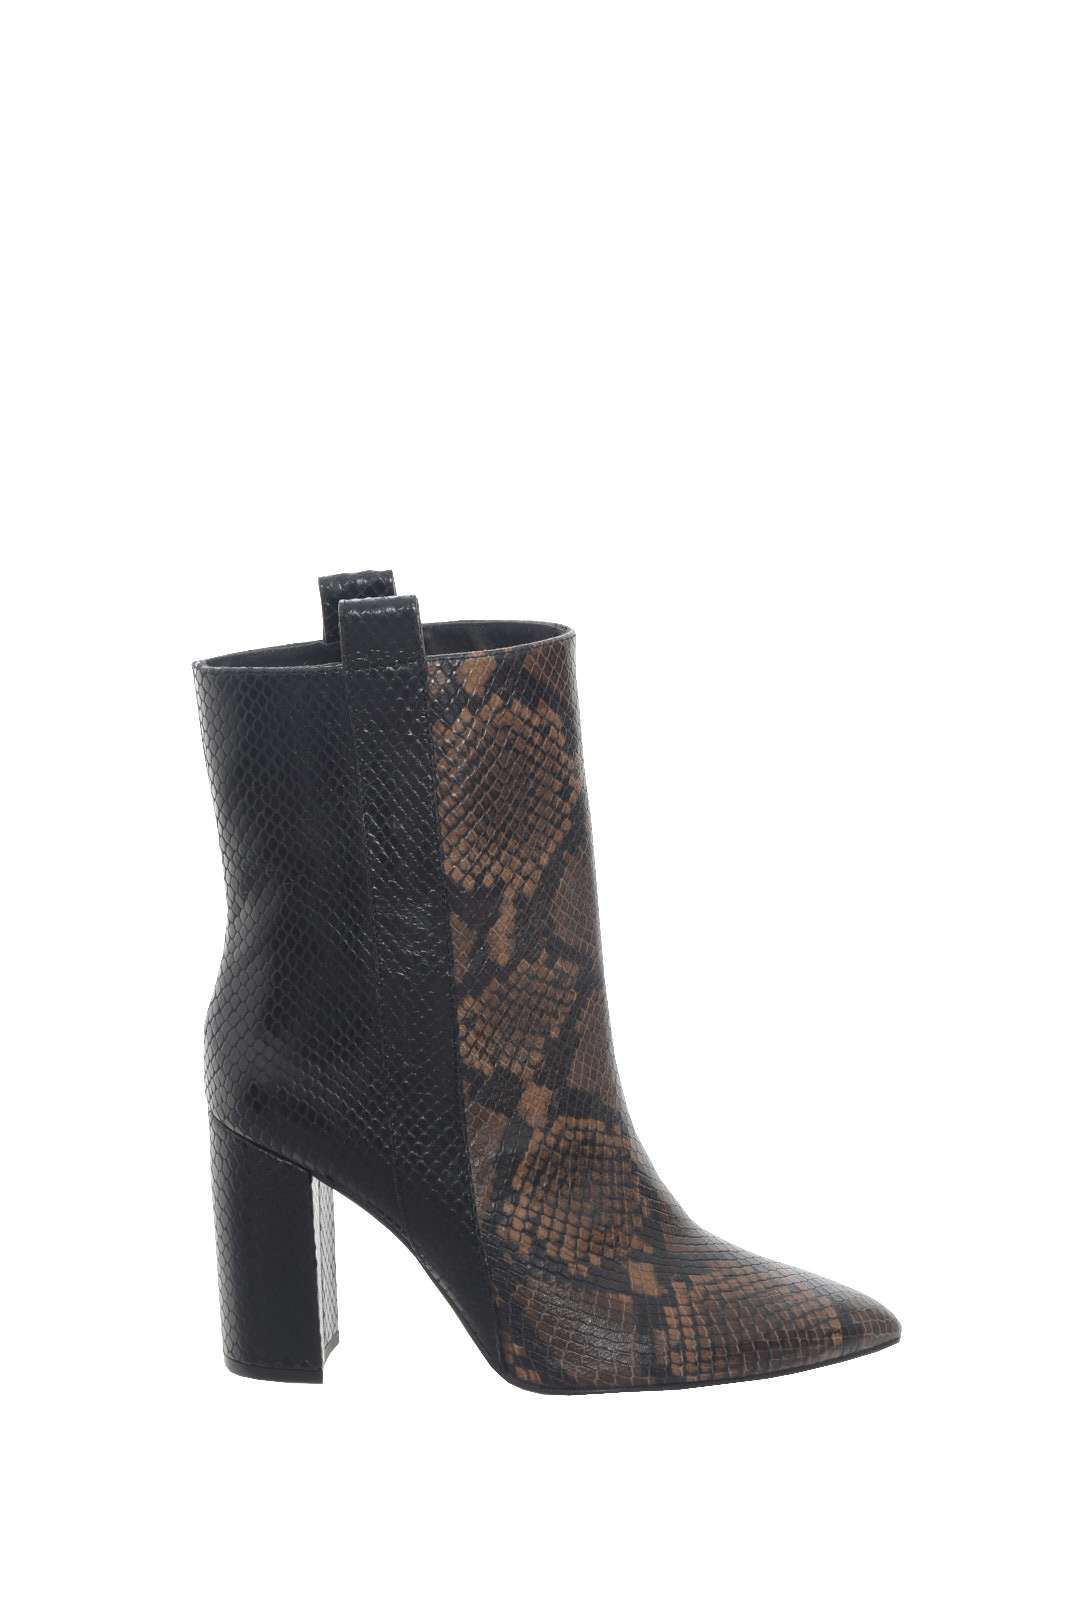 https://www.parmax.com/media/catalog/product/a/i/AI-outlet_parmax-tronchetto-donna-Etwob-BY3903X-A.jpg